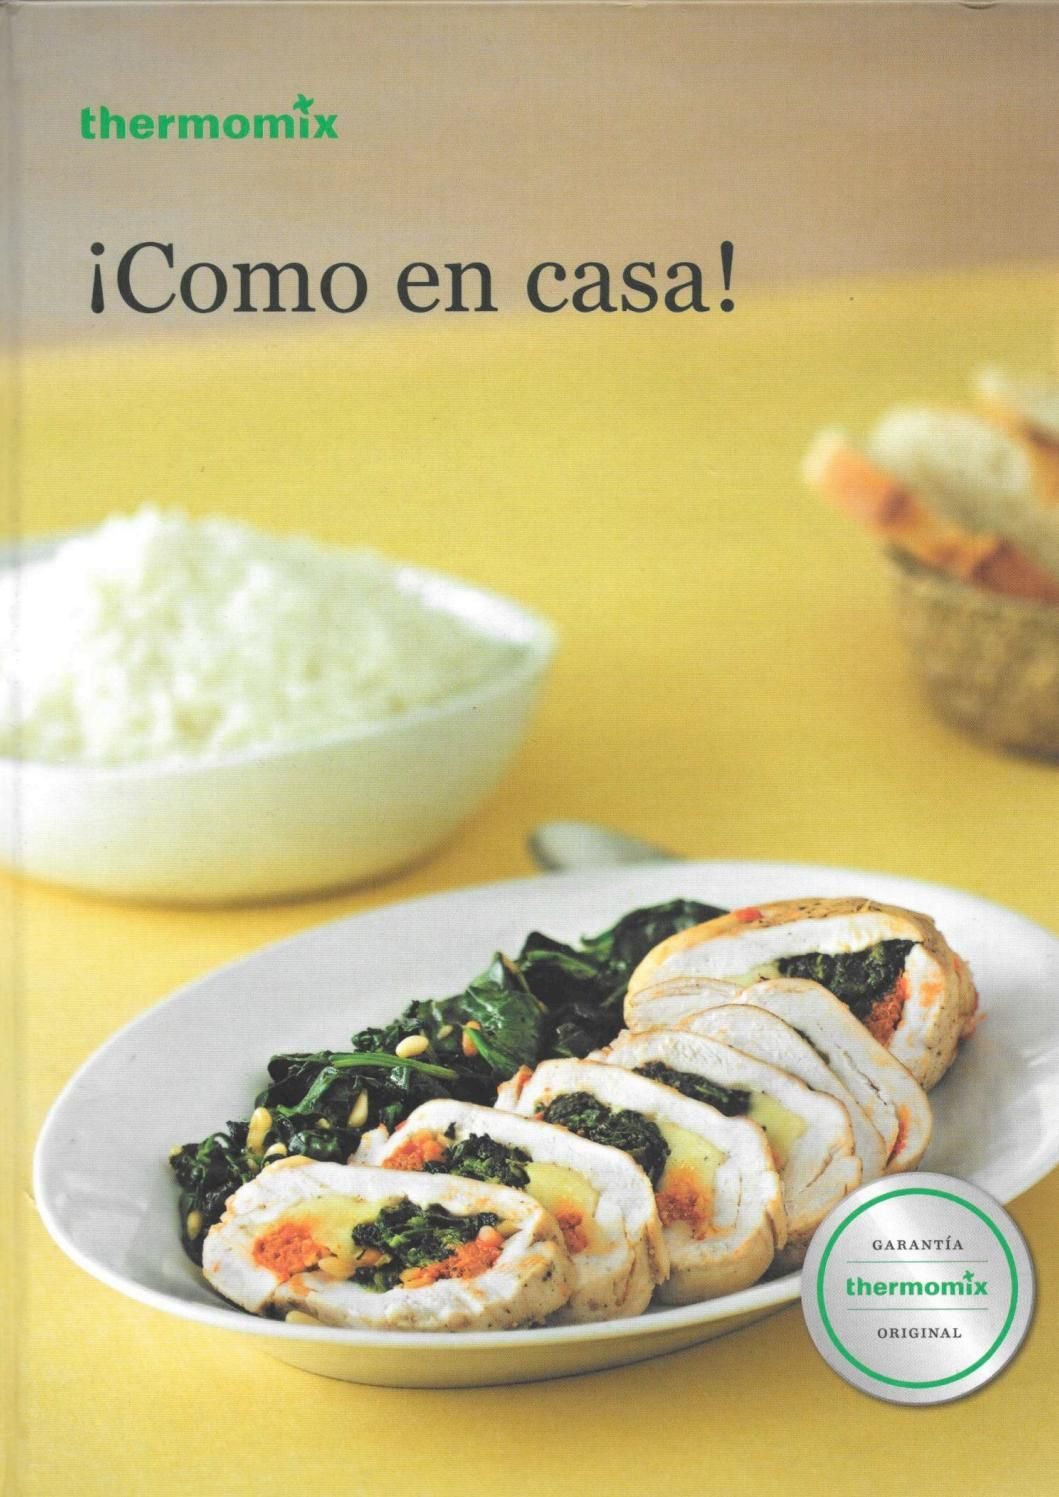 Thermomix Libros Oficiales Como En Casa Thermomix Digtal Thermomix Pinterest